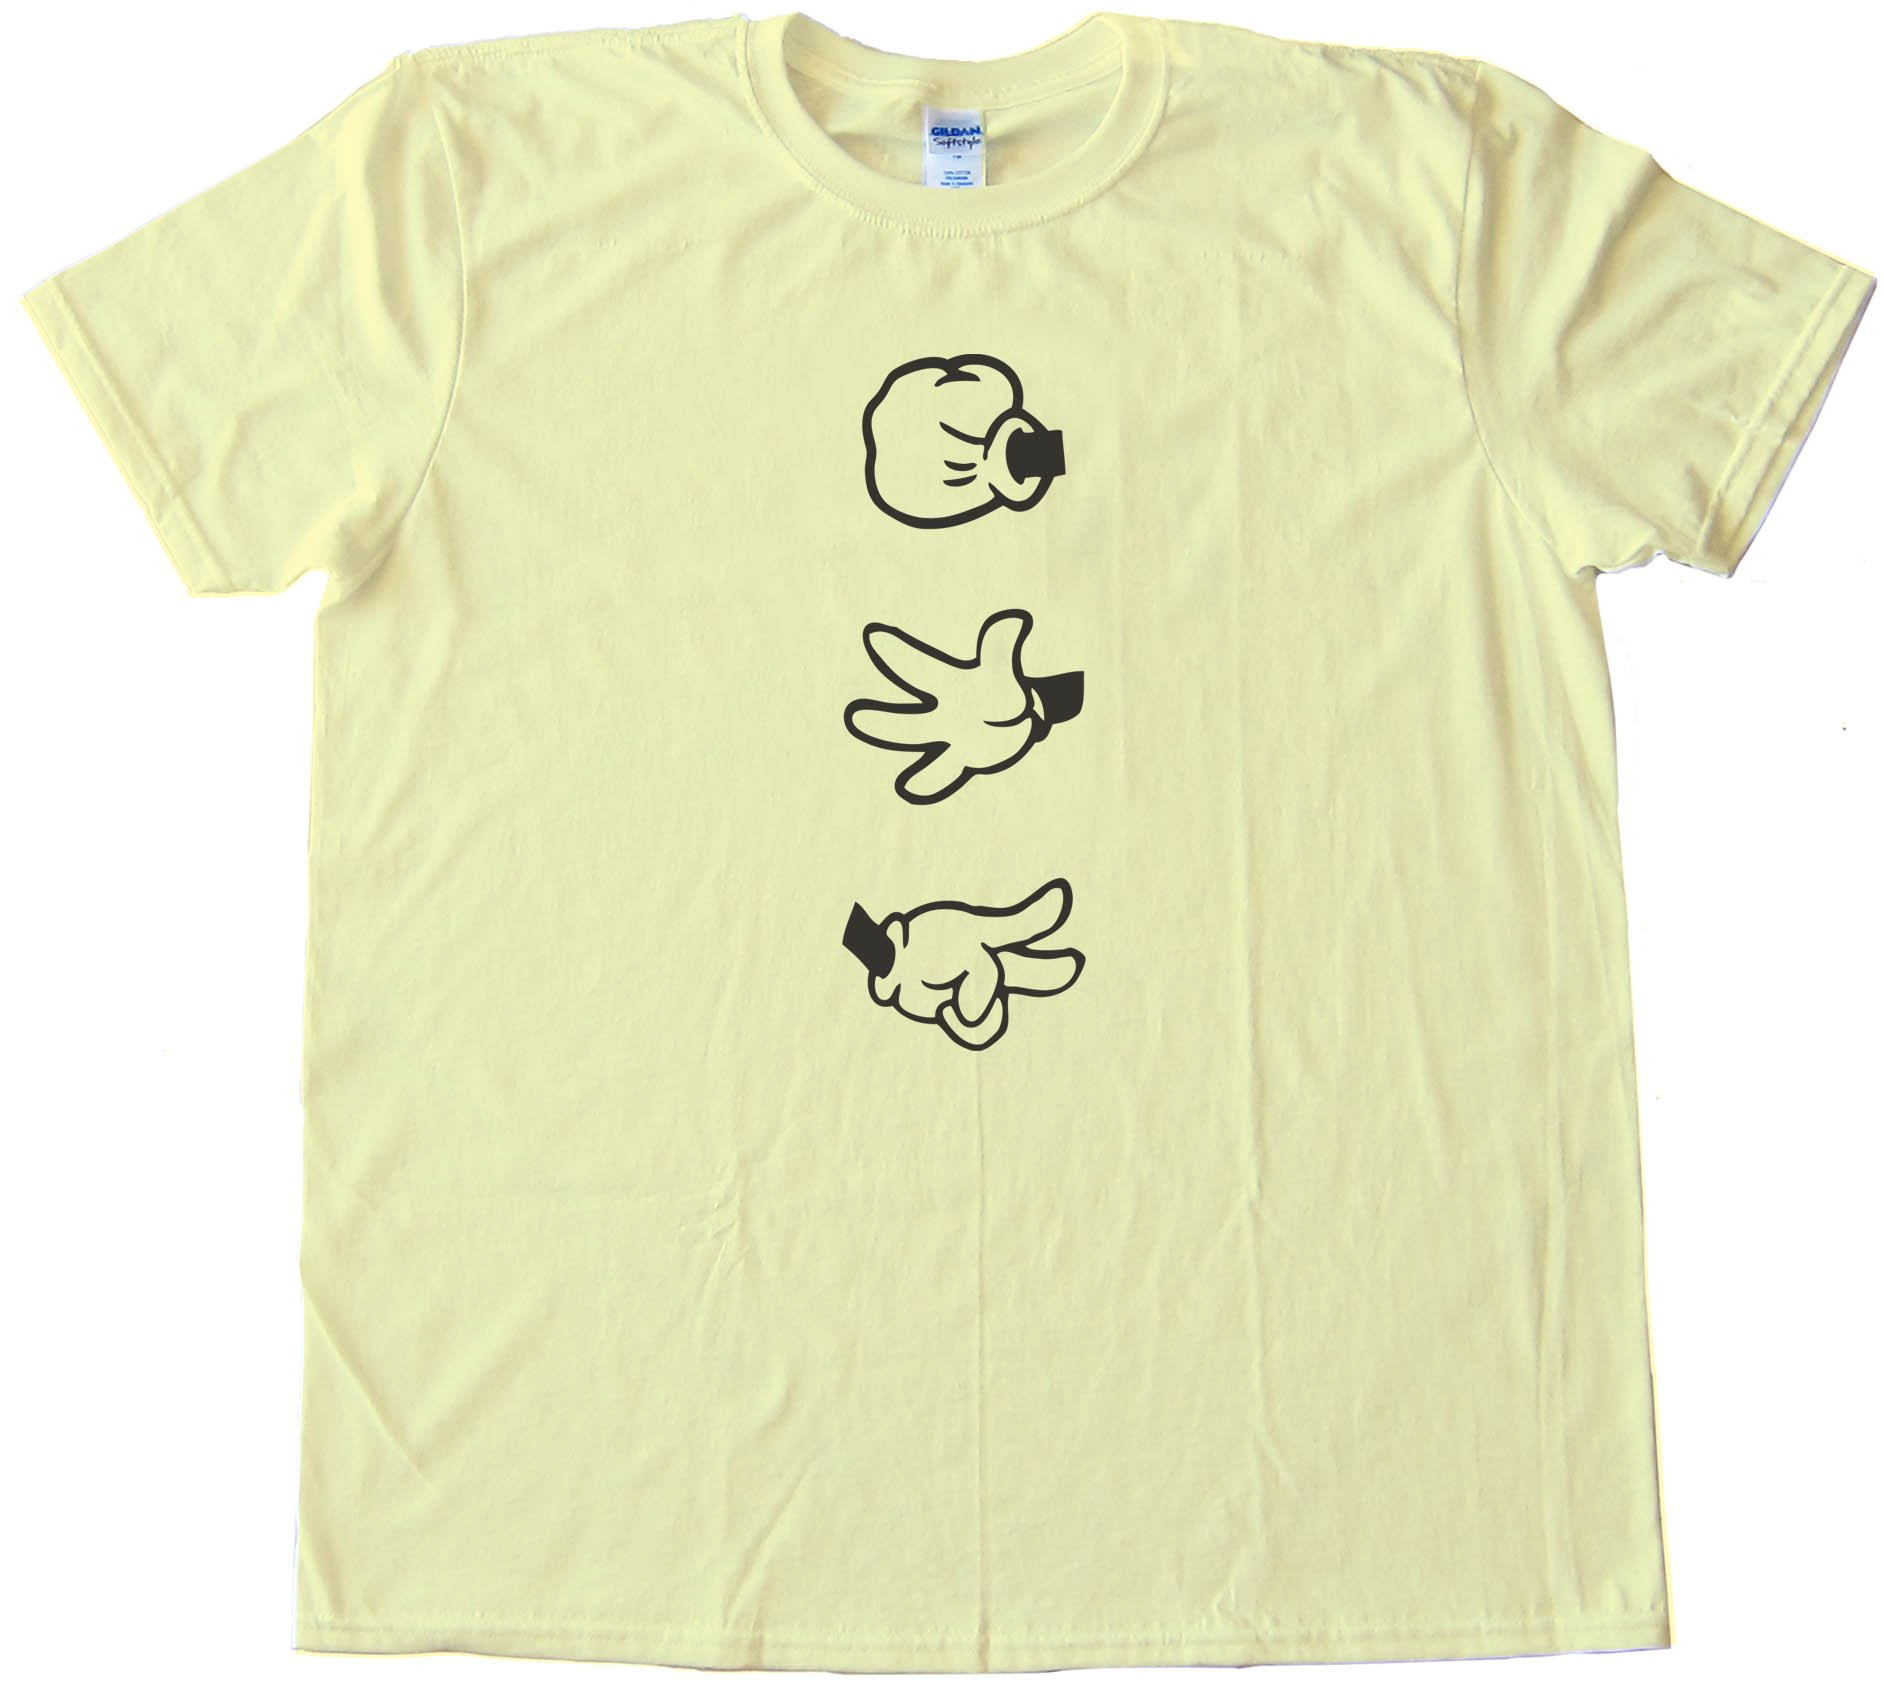 Rock Paper Scissors Mickey Mouse Hands - Tee Shirt